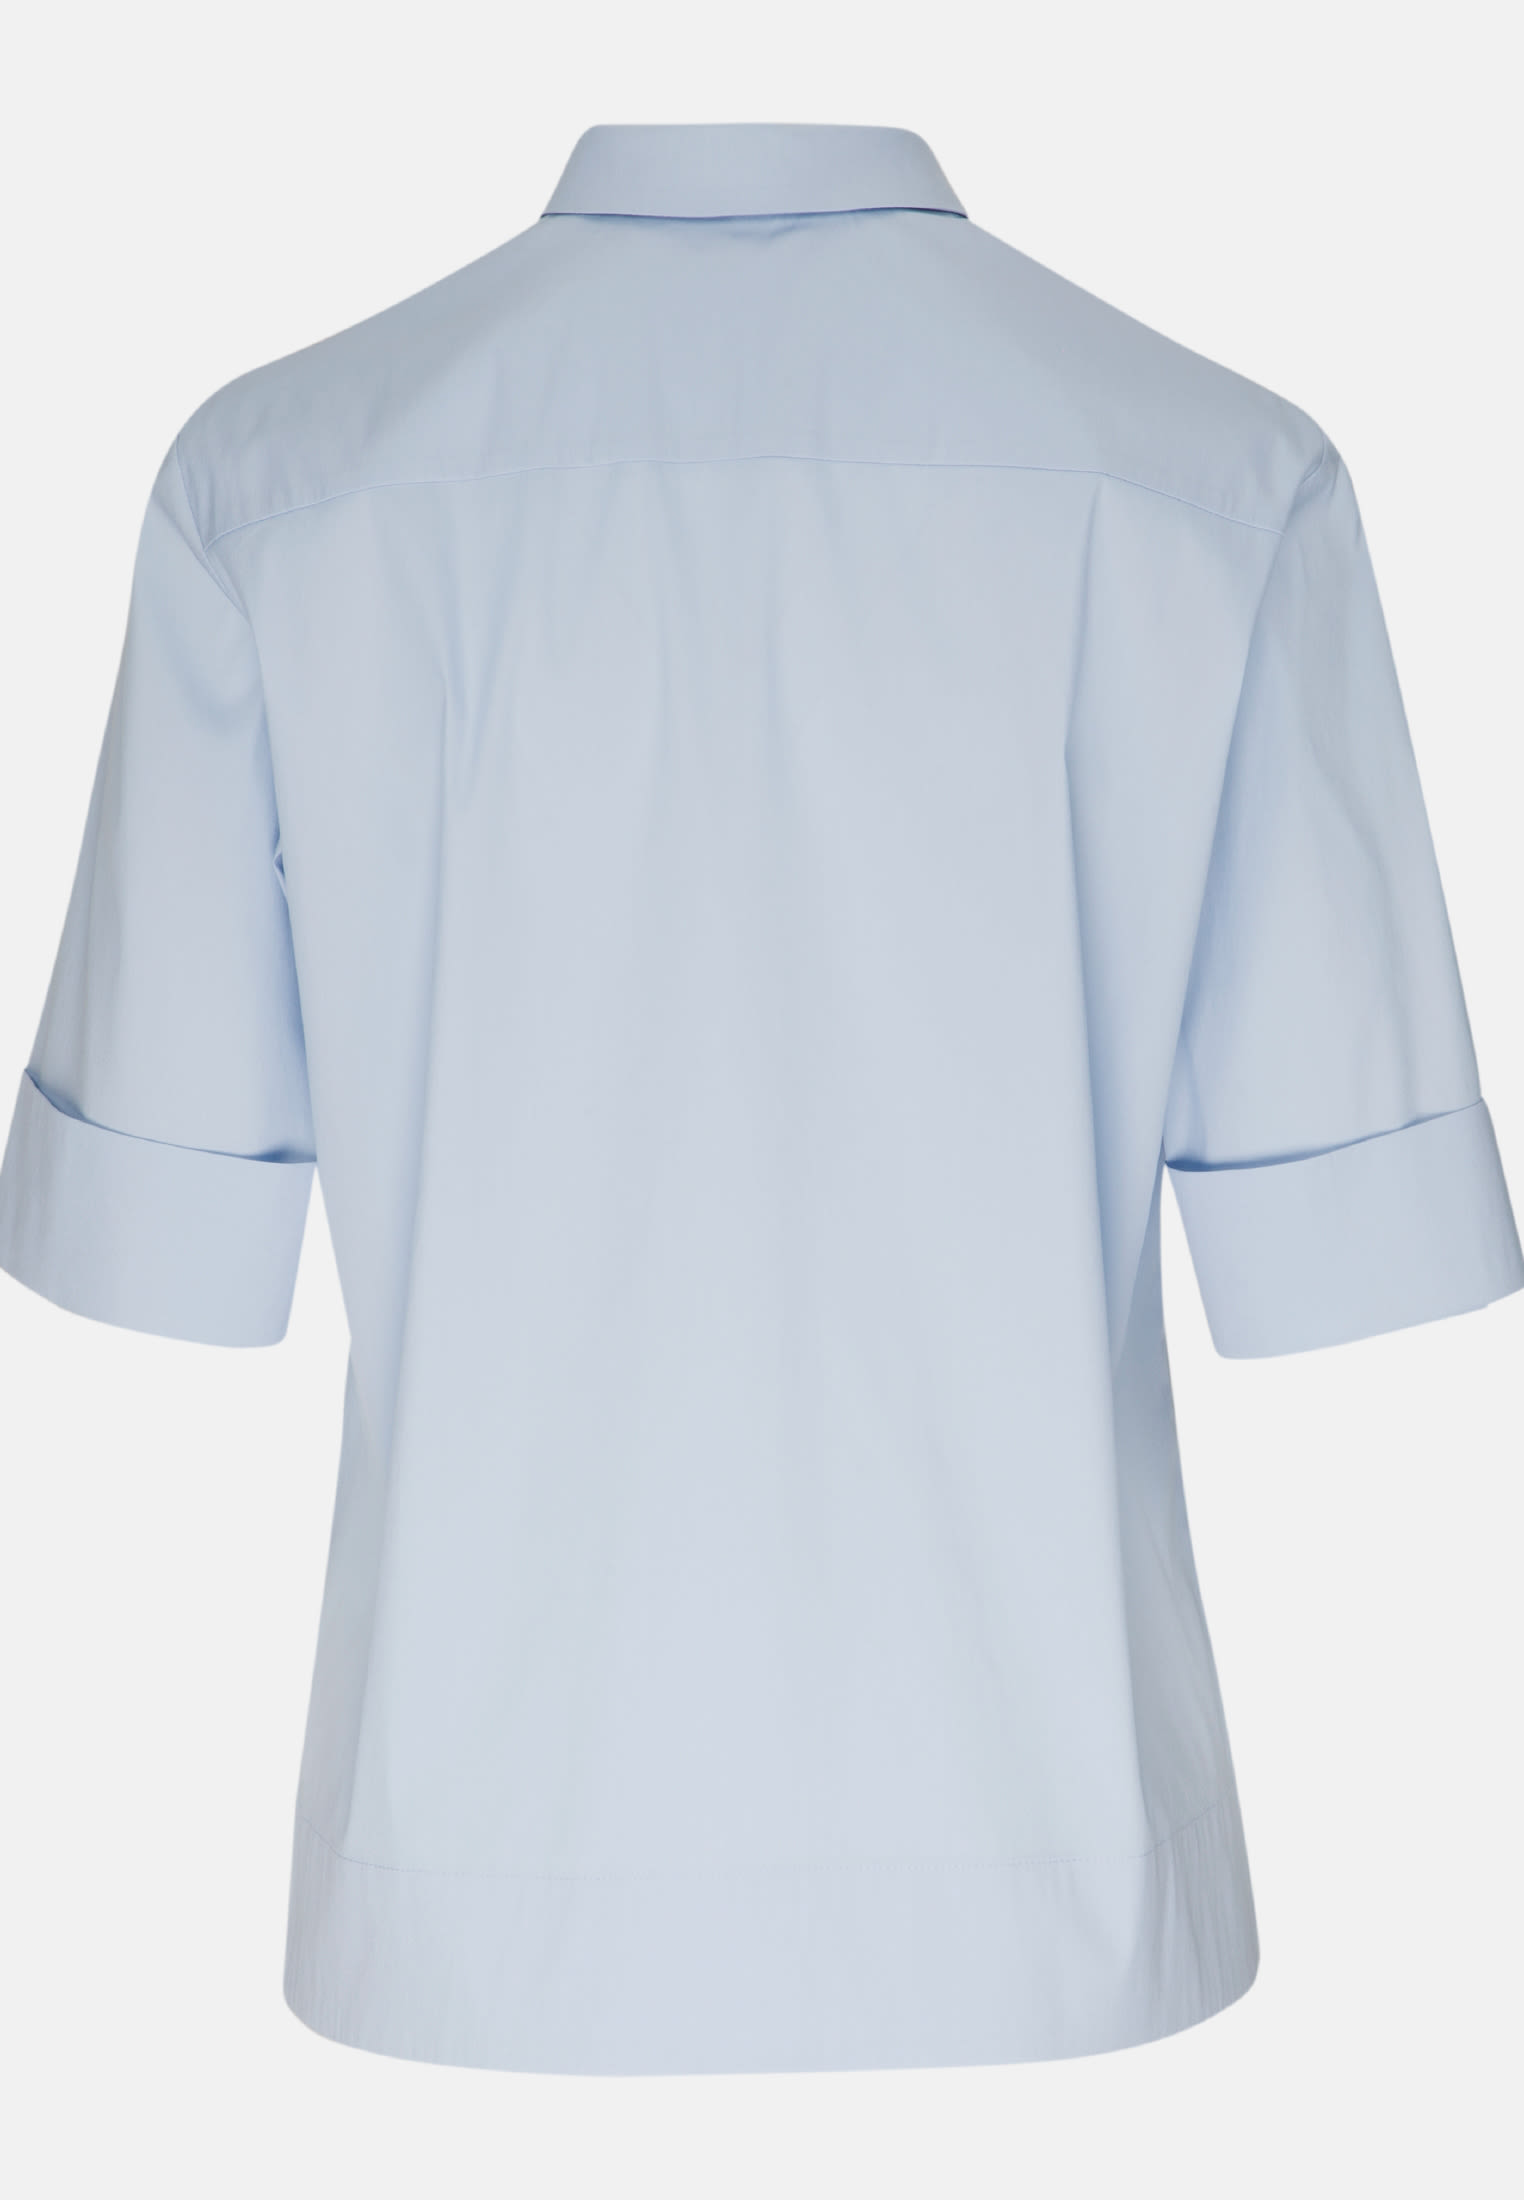 Short sleeve Poplin Shirt Blouse made of cotton blend in Light blue |  Seidensticker Onlineshop